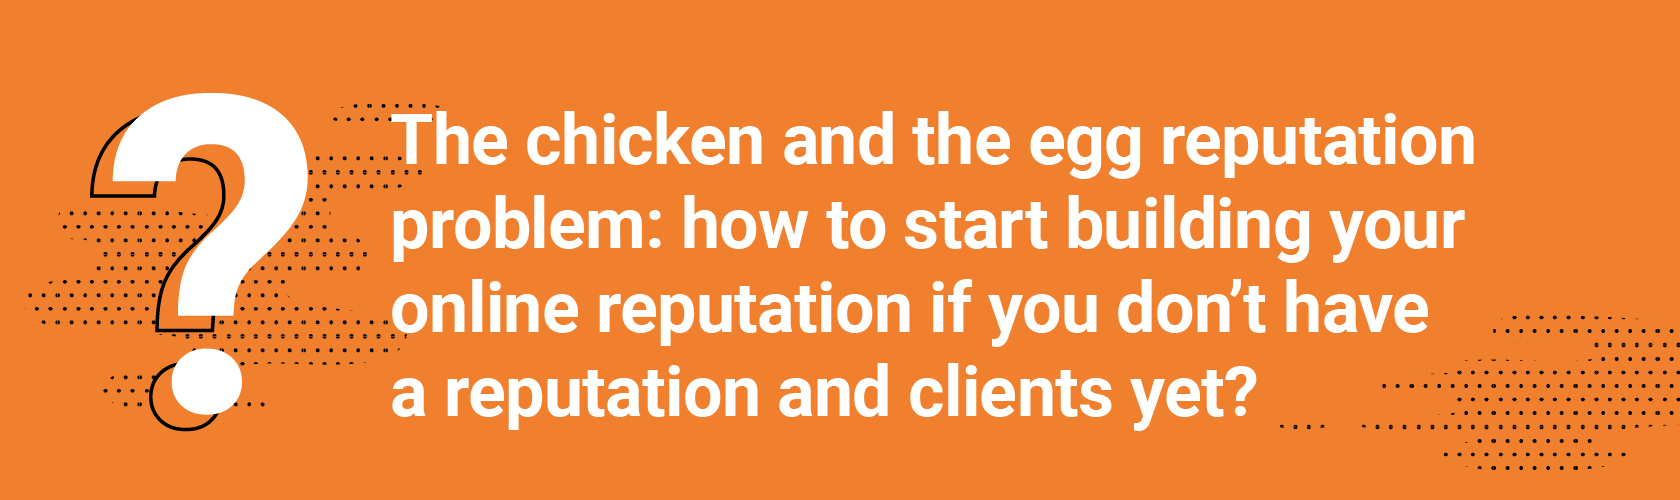 Q3 The chicken and the egg reputation problem: how do you start building your online reputation if you don't have a reputation and clients yet?